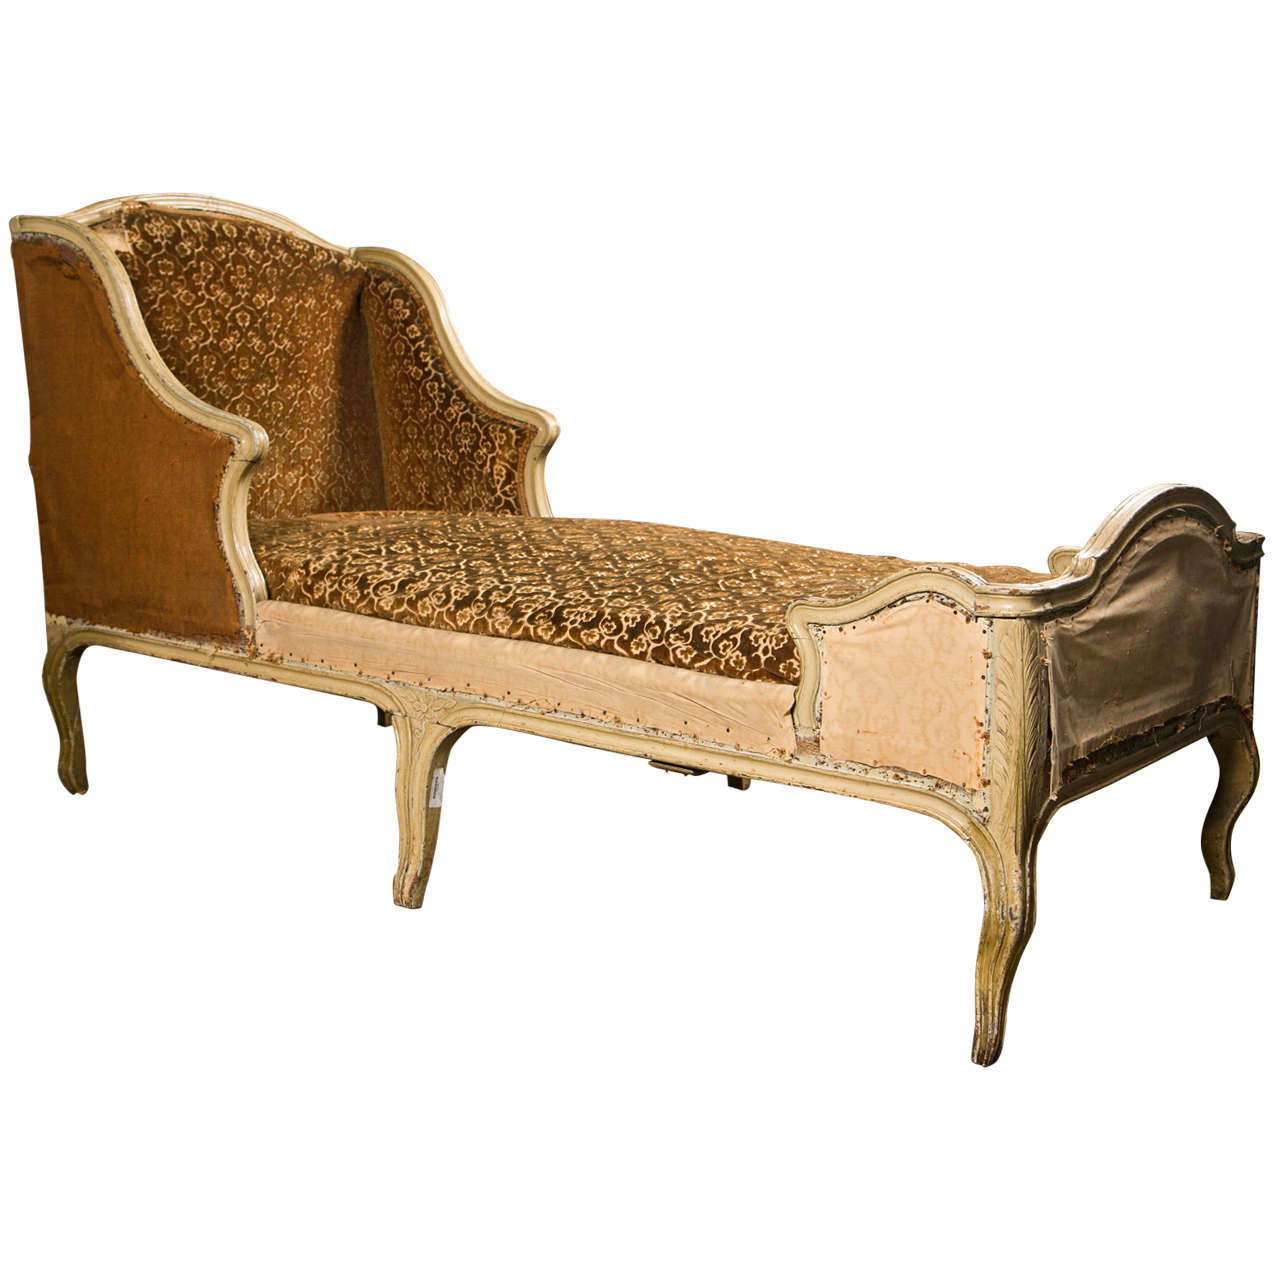 French Painted Oak Chaise Longue in the Rococo Style, Louis XV ... on